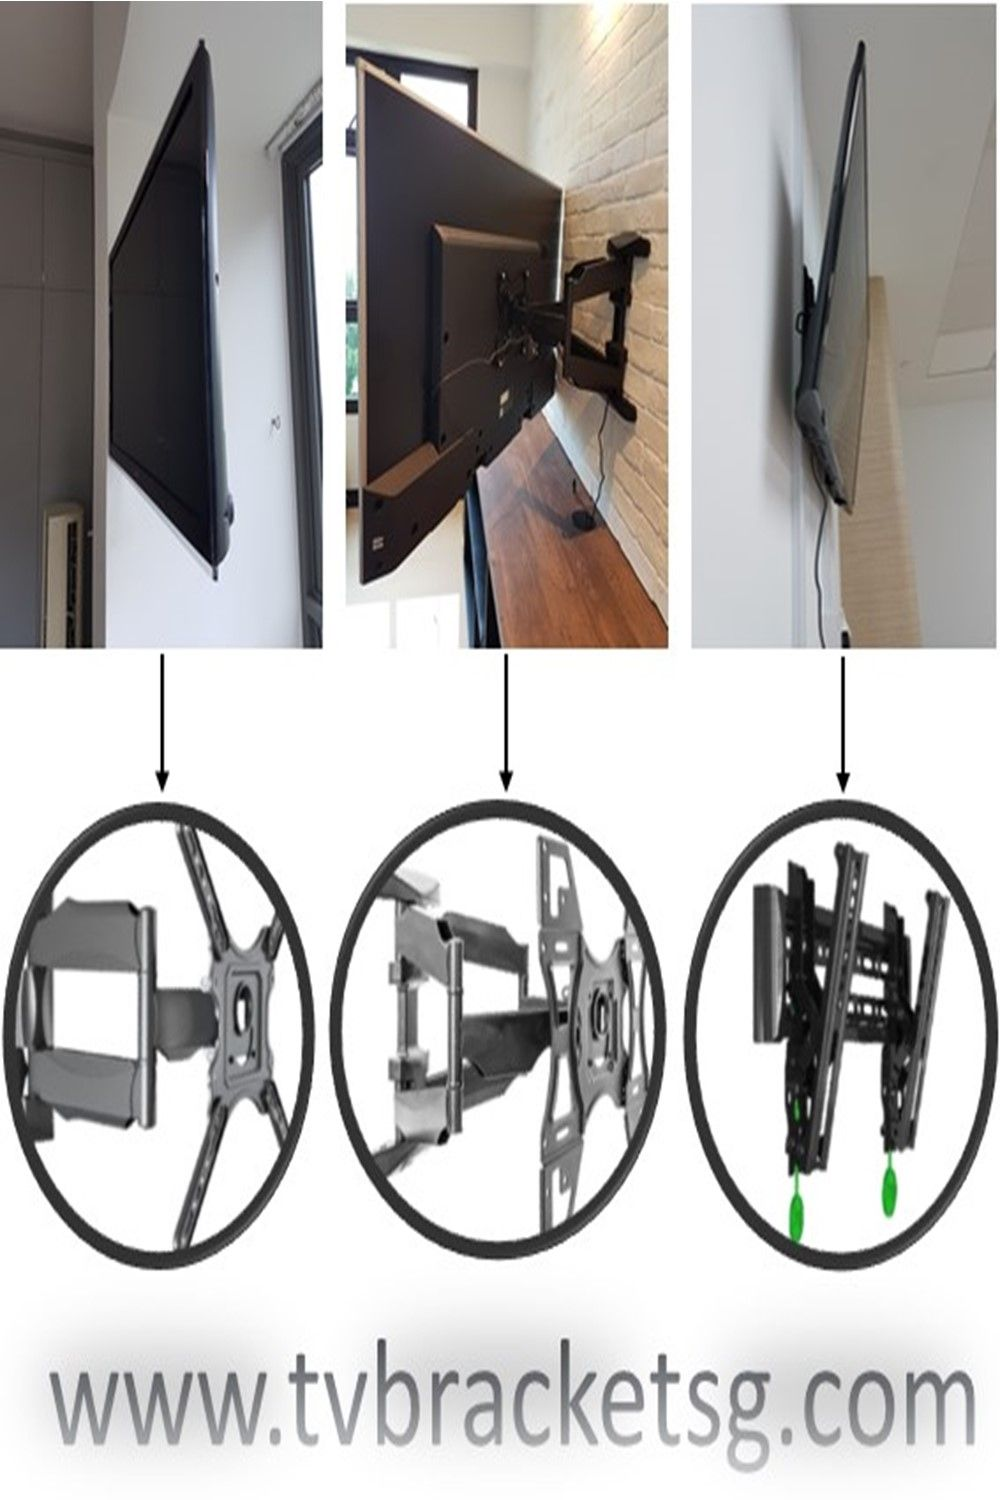 Many Types Of Tv Wall Mount In Local In 2021 Tv Wall Wall Mounted Tv Wall Mount